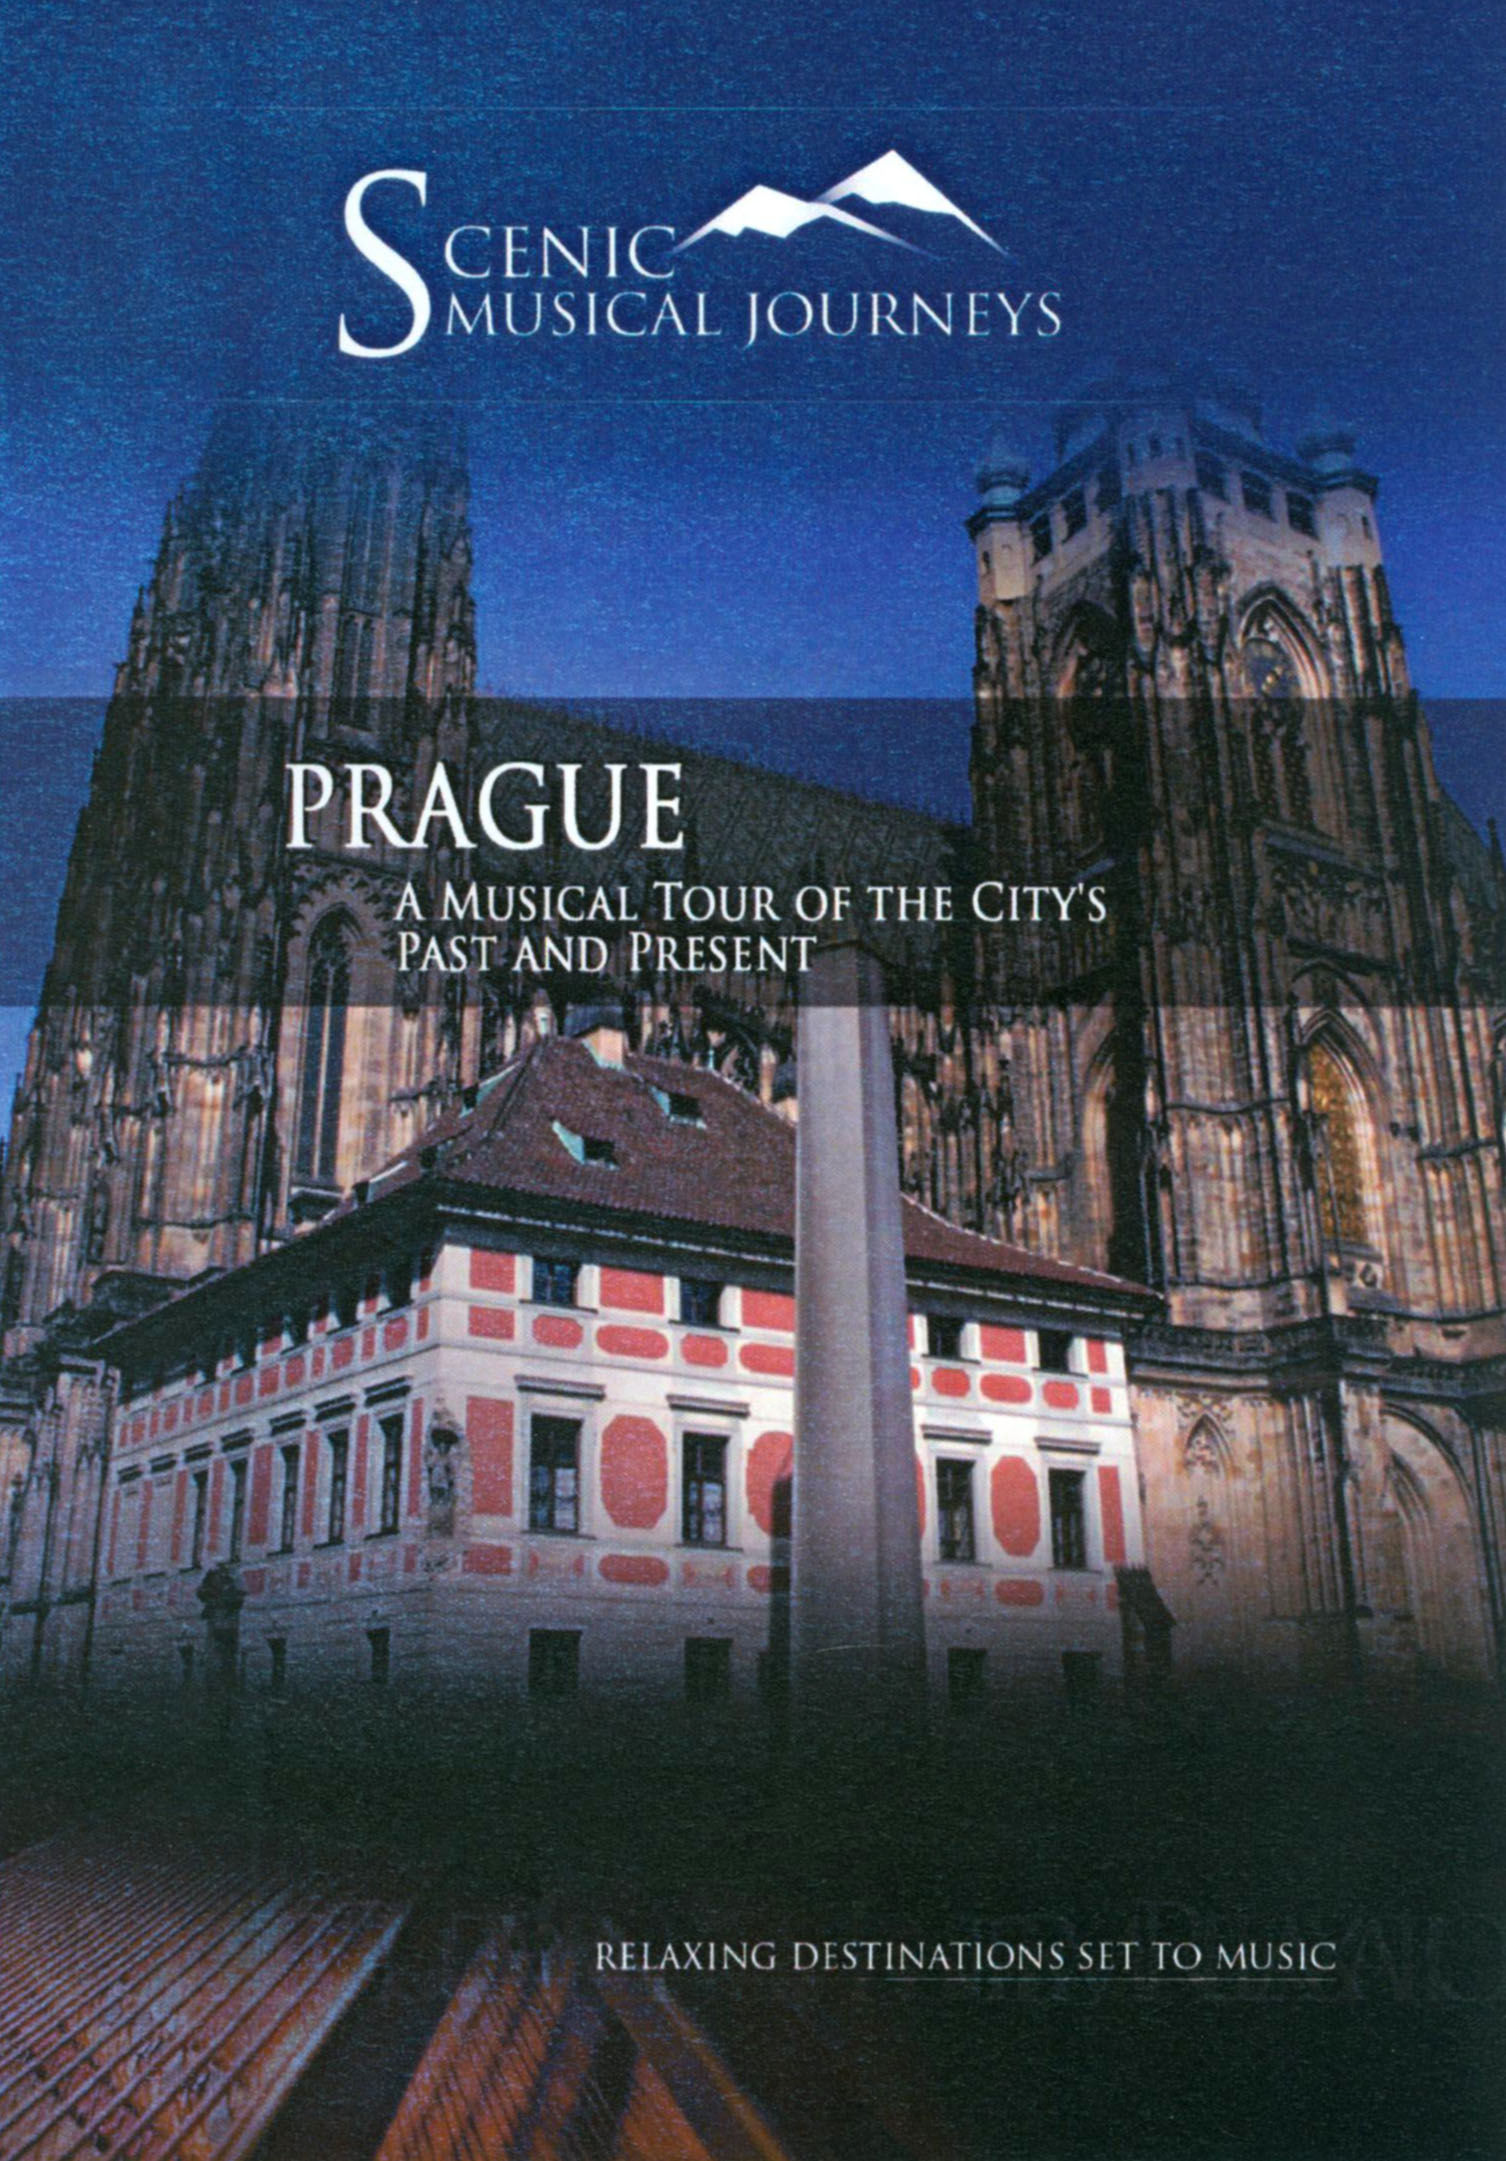 Scenic Musical Journeys: Prague - A Musical Tour of The City's Past and Present